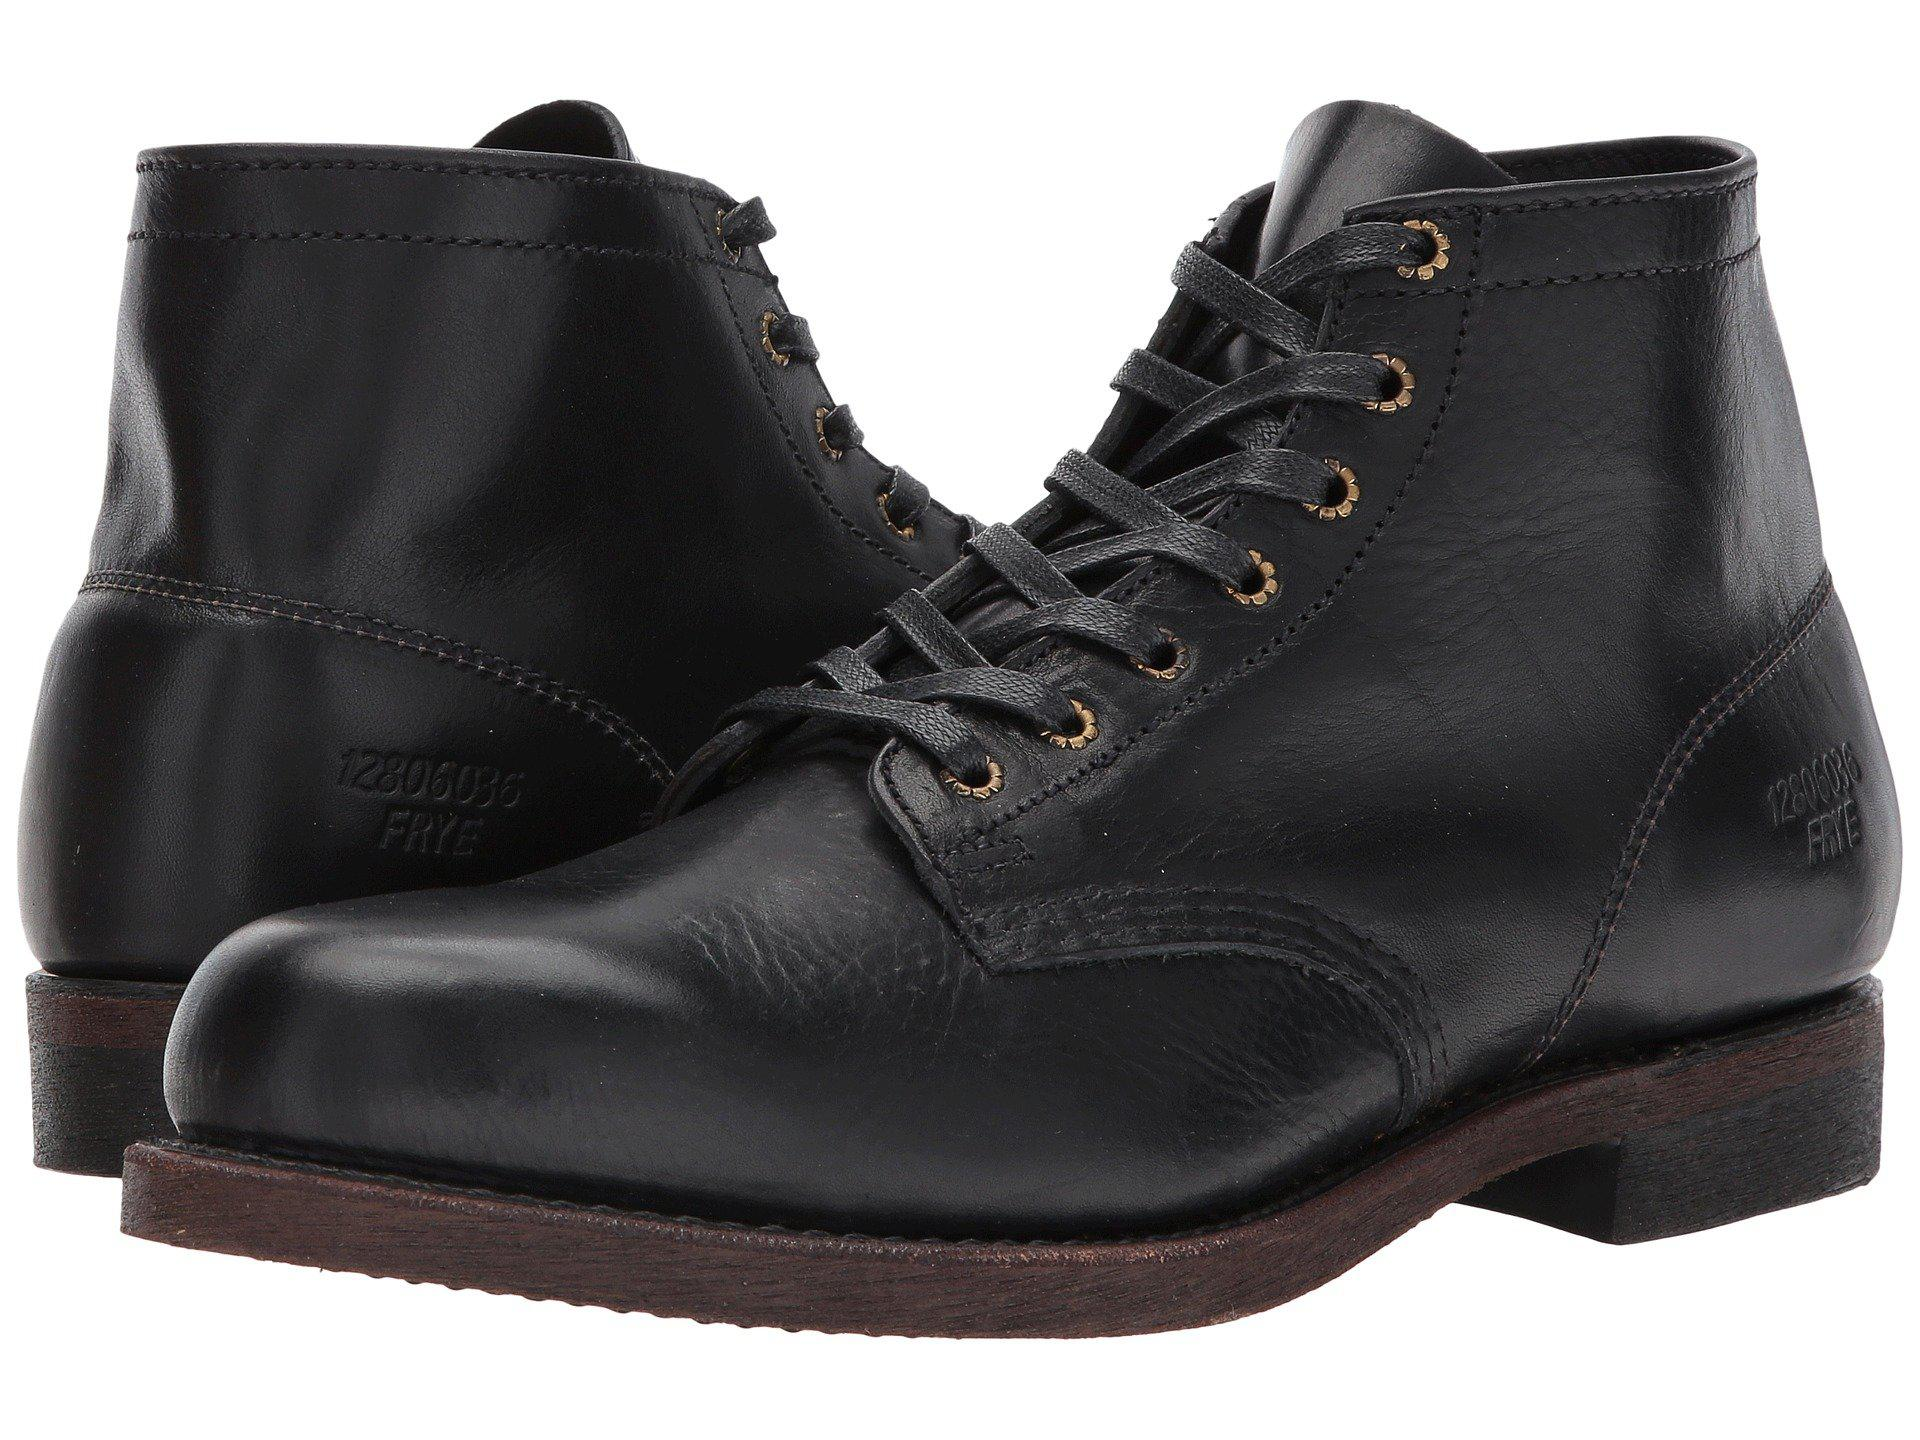 1158b7b7f31a39 Lyst - Frye Prison Boot in Black for Men - Save 40%